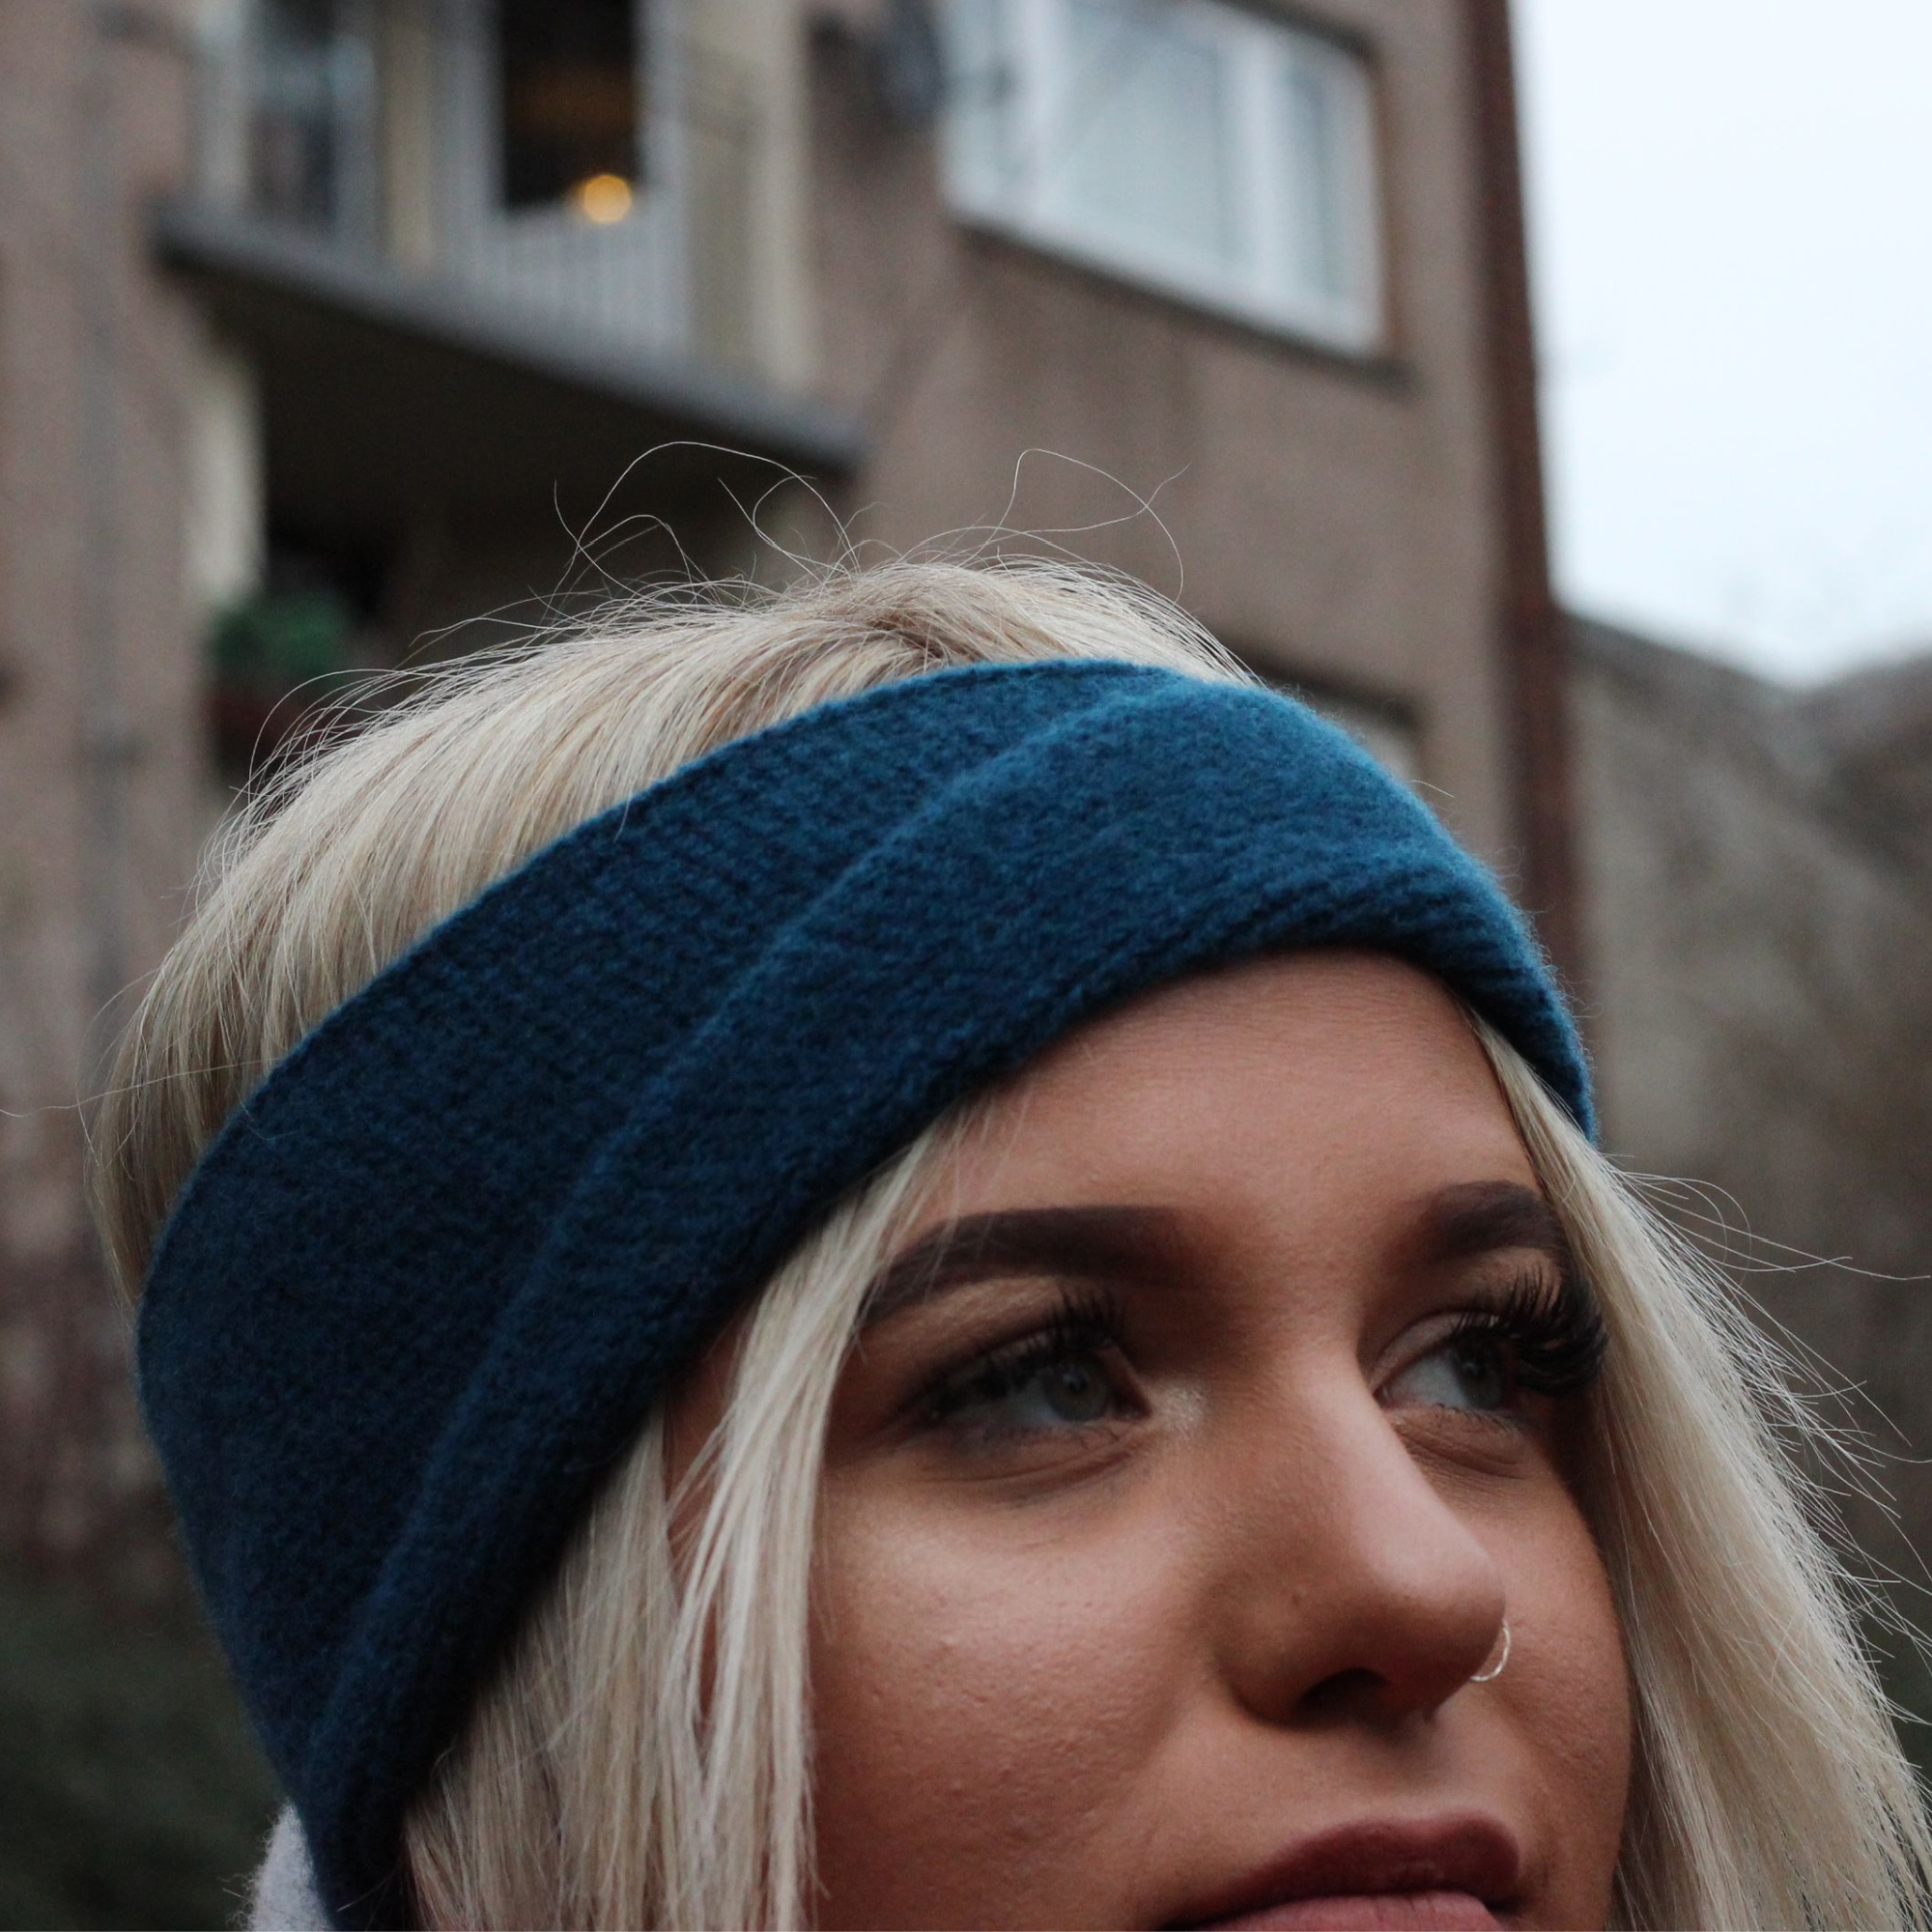 Twisted headband by Lyndsey Currie